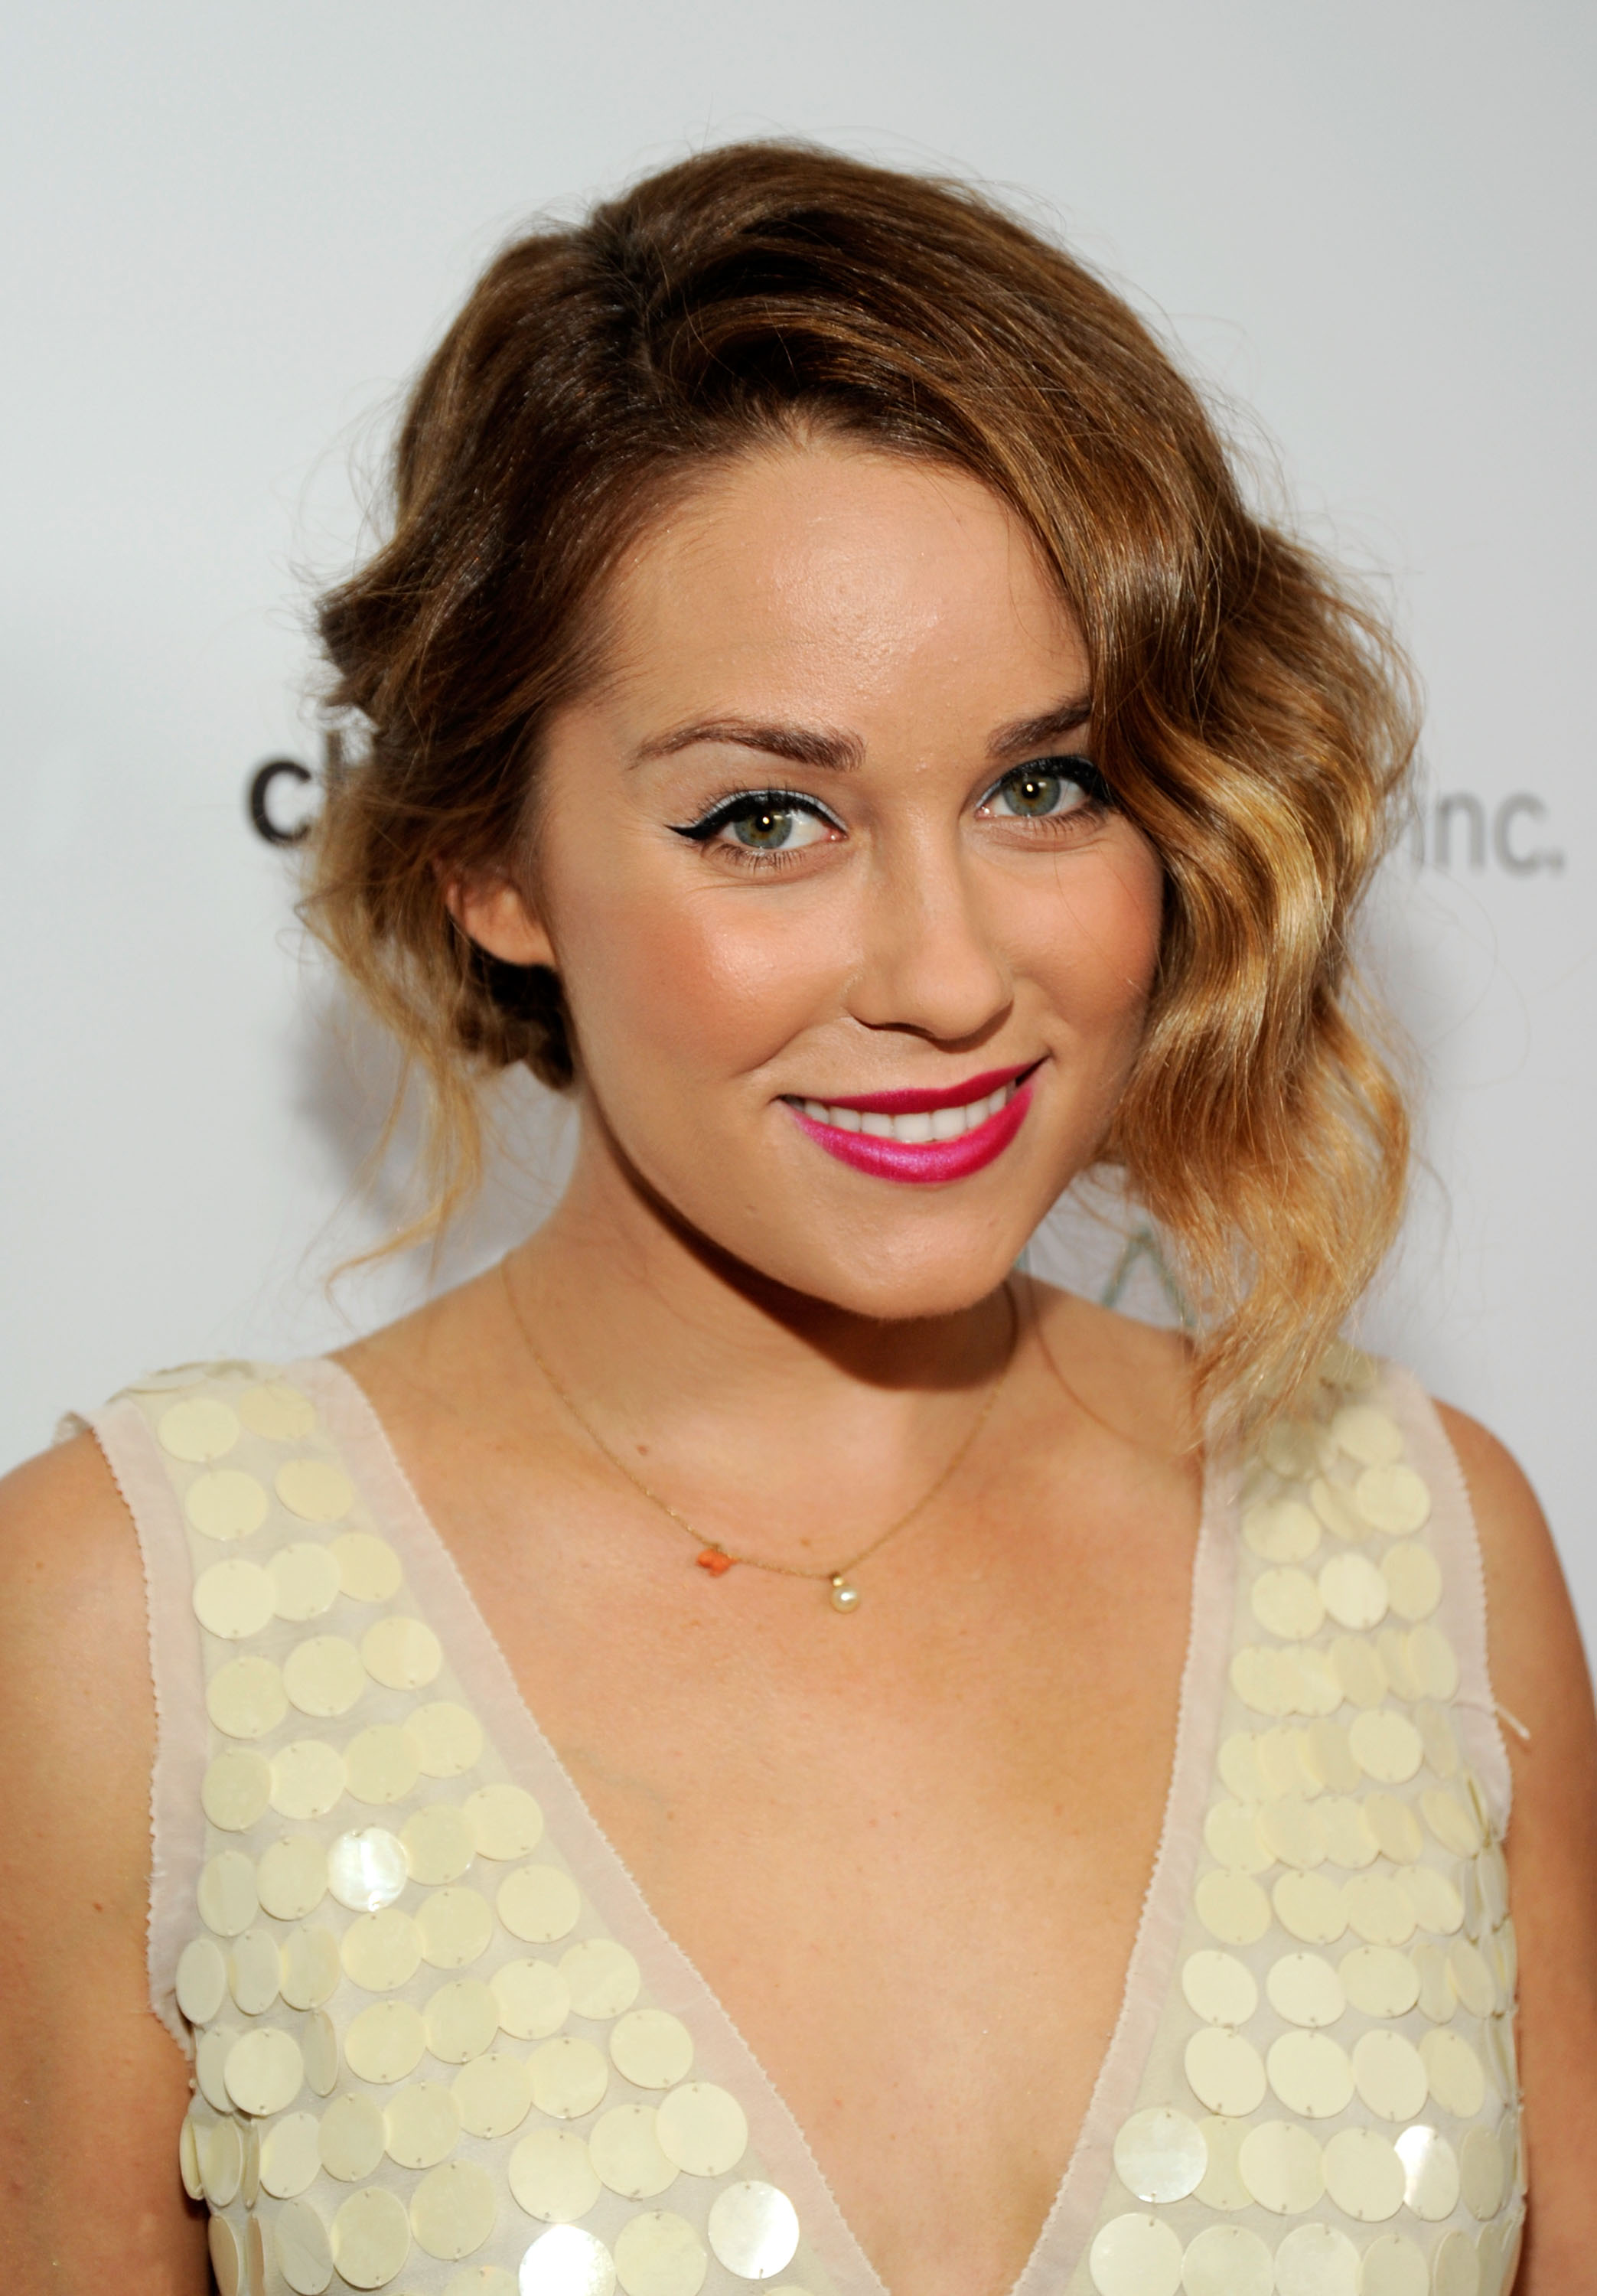 Lauren Conrad Has Great Advice For Dealing With Bullies U0026 She Would Know,  Considering Her U0027Hillsu0027 Days